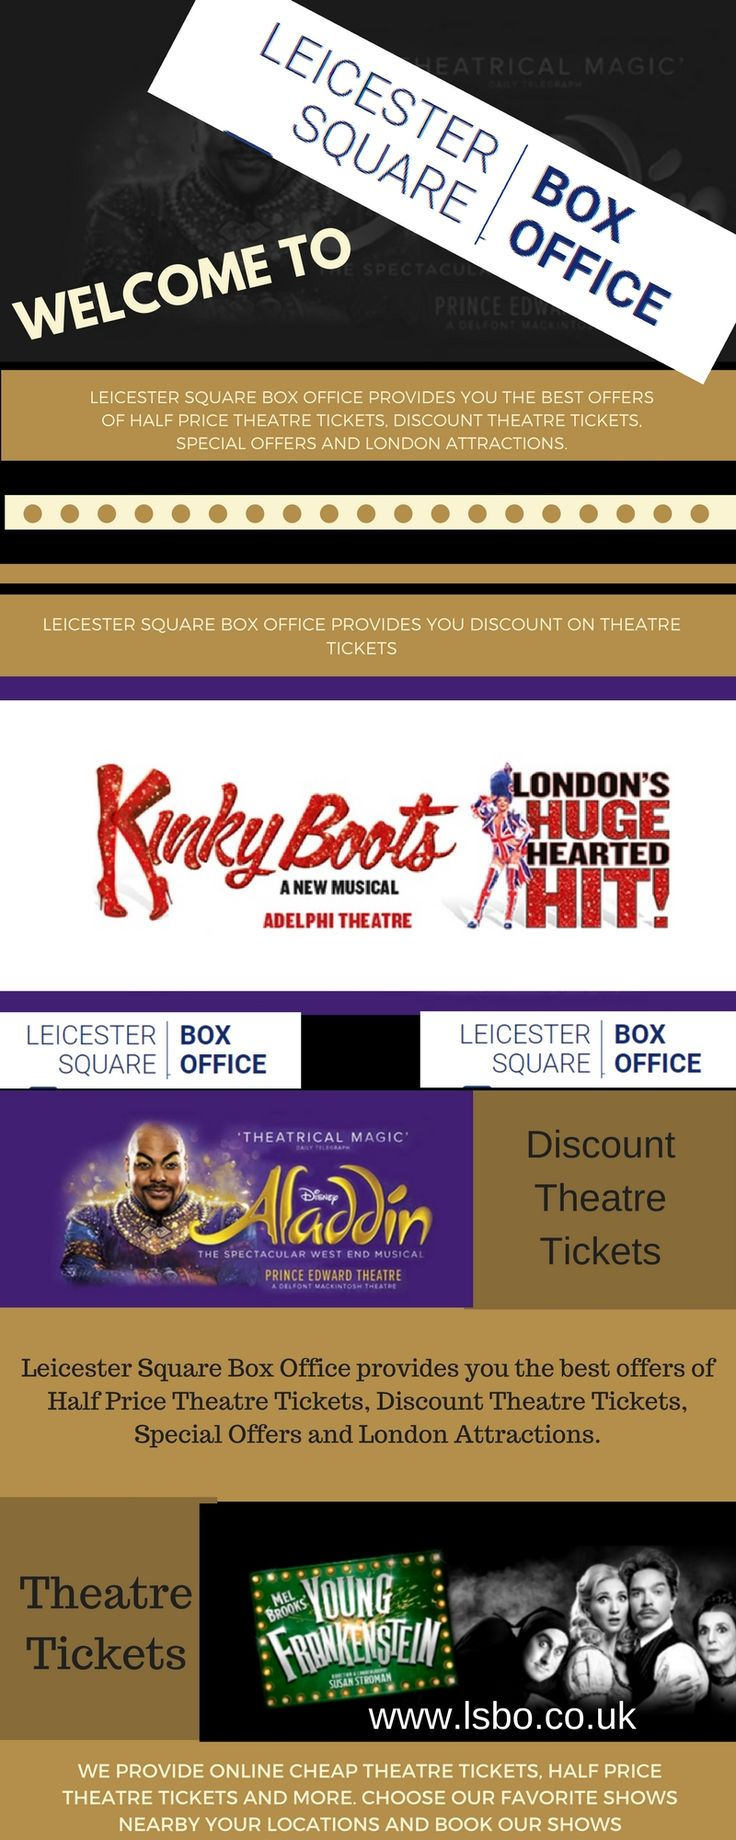 Theatre Tickets Leicester Square Box Office 	  We provide online Cheap Theatre Tickets, Half Price Theatre Tickets and more. Choose our favorite shows nearby your locations and book our shows. Get more information about us. http://www.lsbo.co.uk/